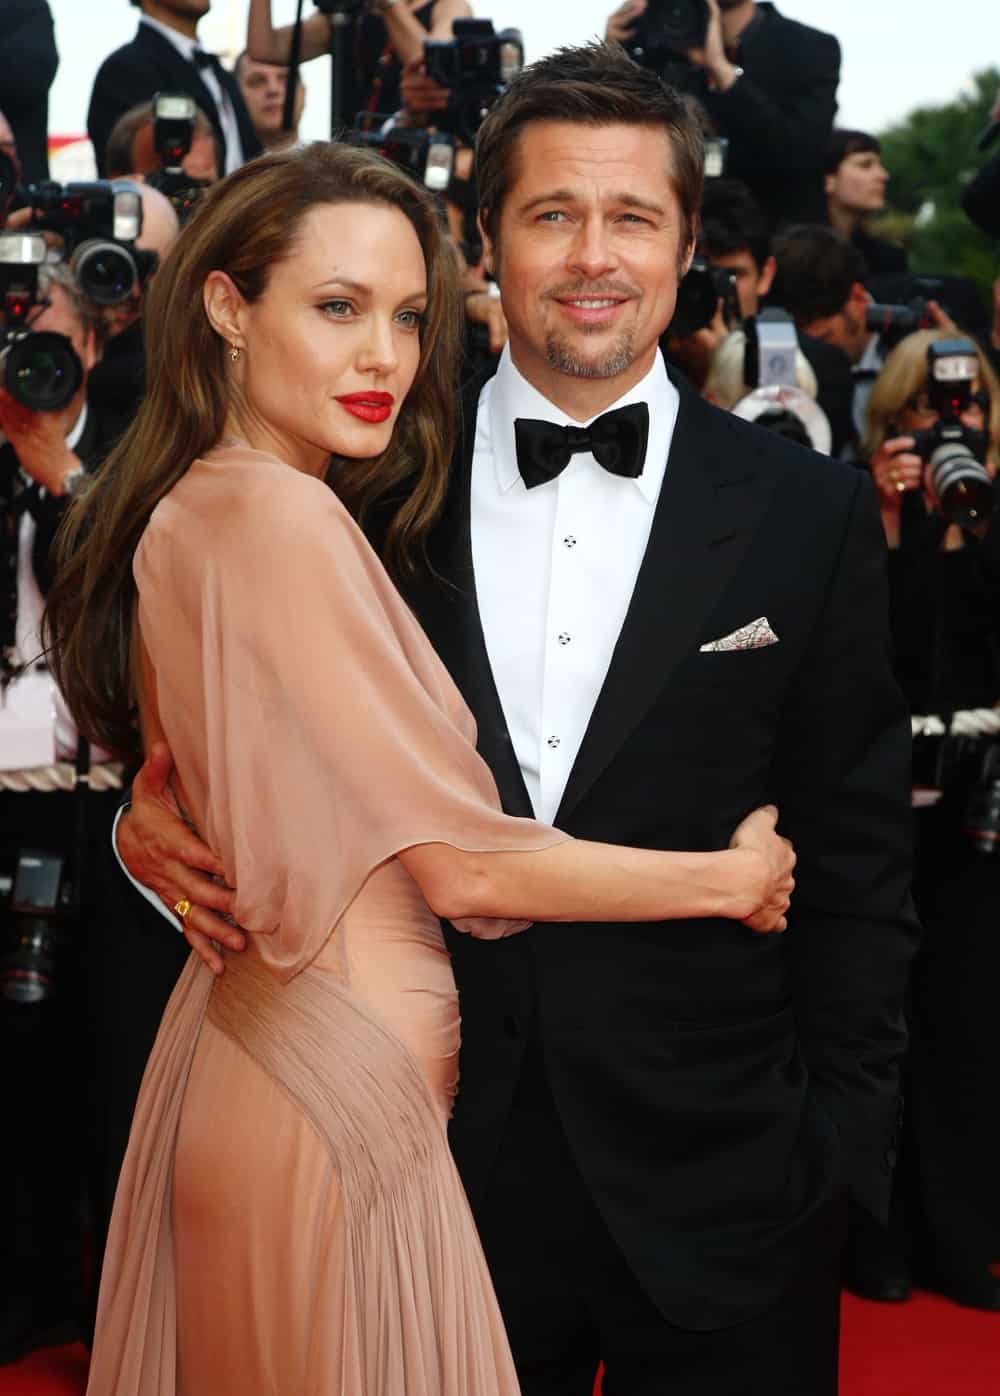 Angelina Jolie and Brad Pitt Inglourious Basterds Premiere - 2009 Cannes Film Festival